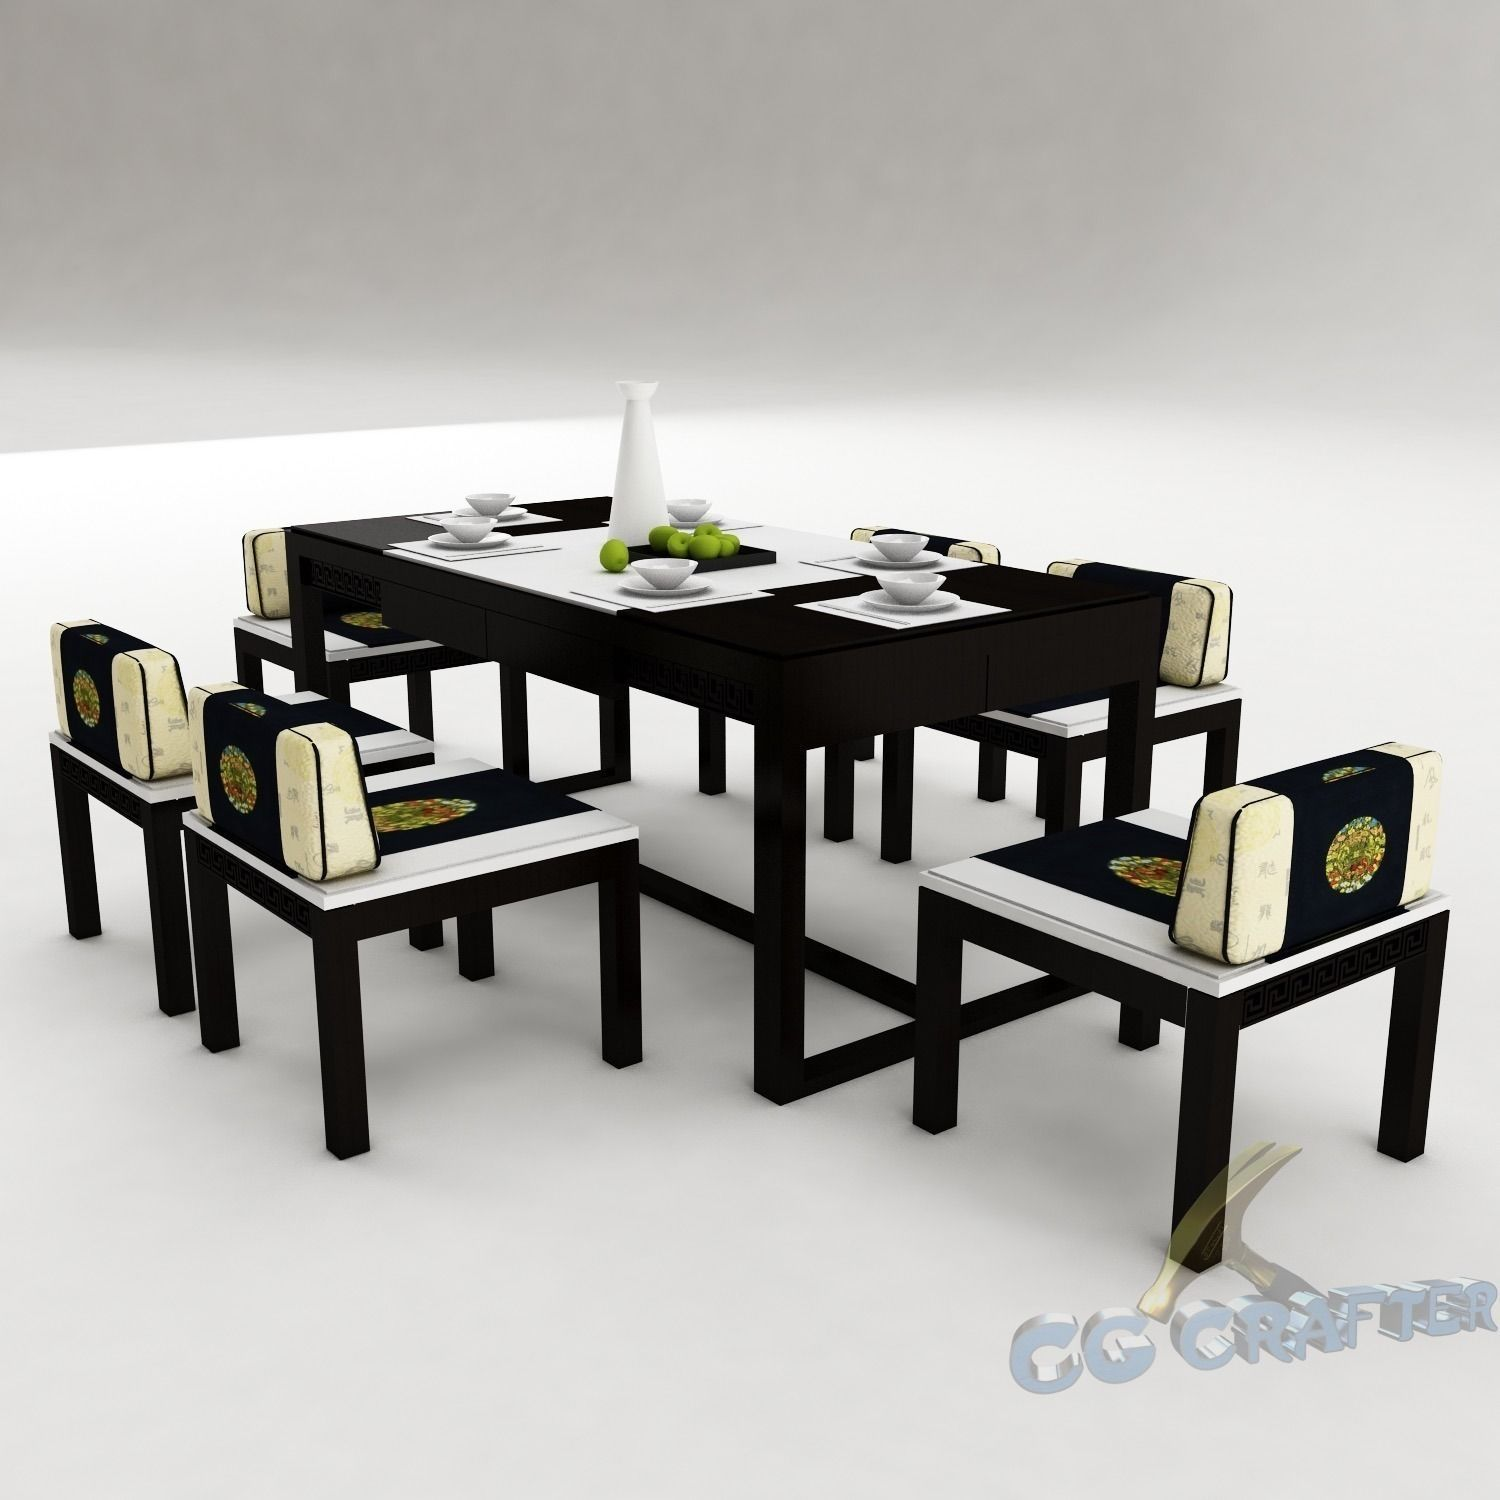 Dining table set 44 3d model max obj 3ds fbx for Dining table latest model